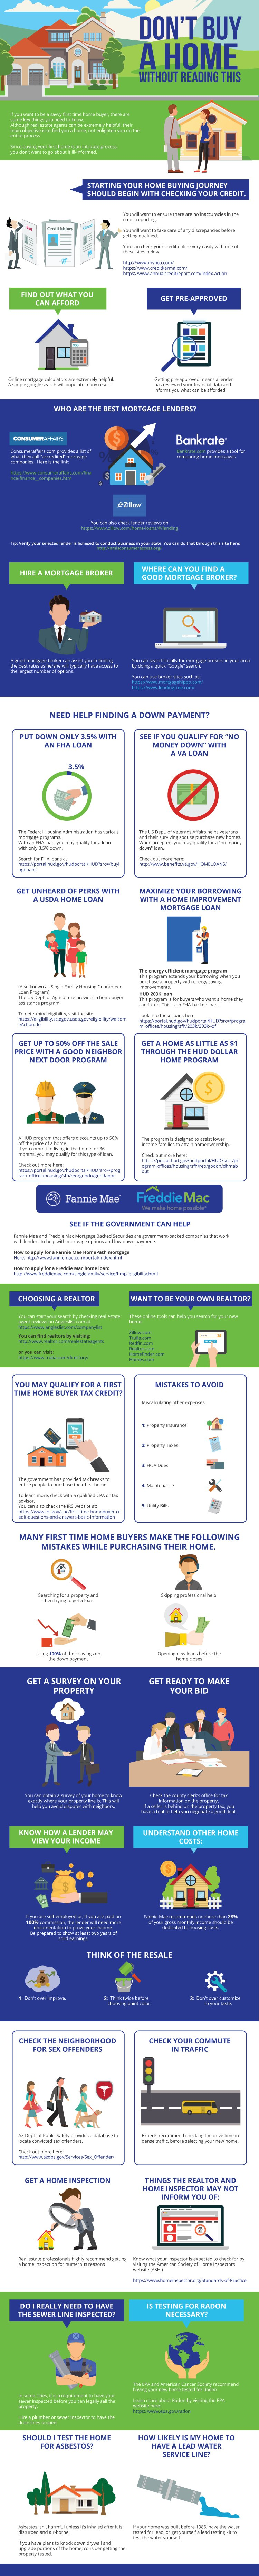 Buy a Home first time guide zillow